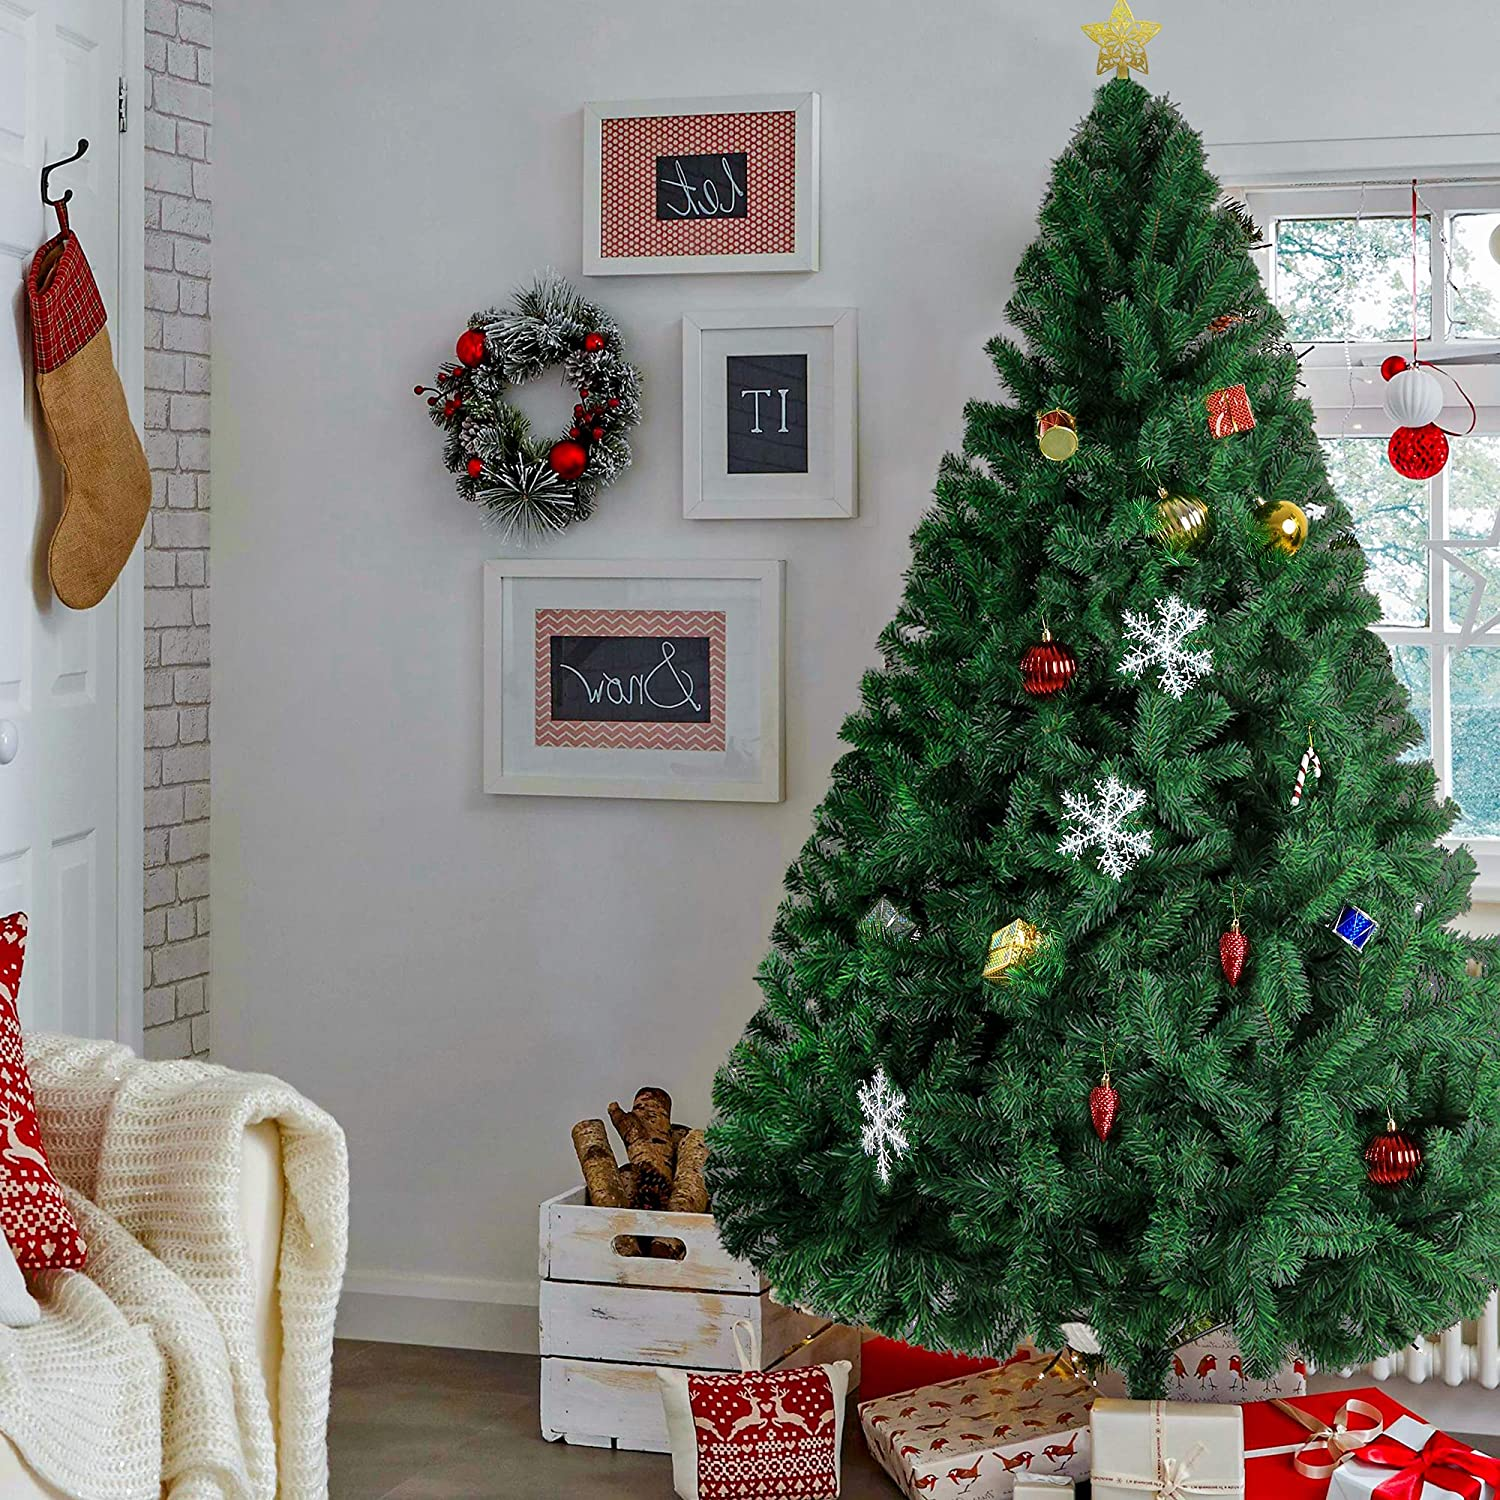 Livebest 8ft Artificial New York Mall Quantity limited PVC Christmas with Meta Tree Tips 1500